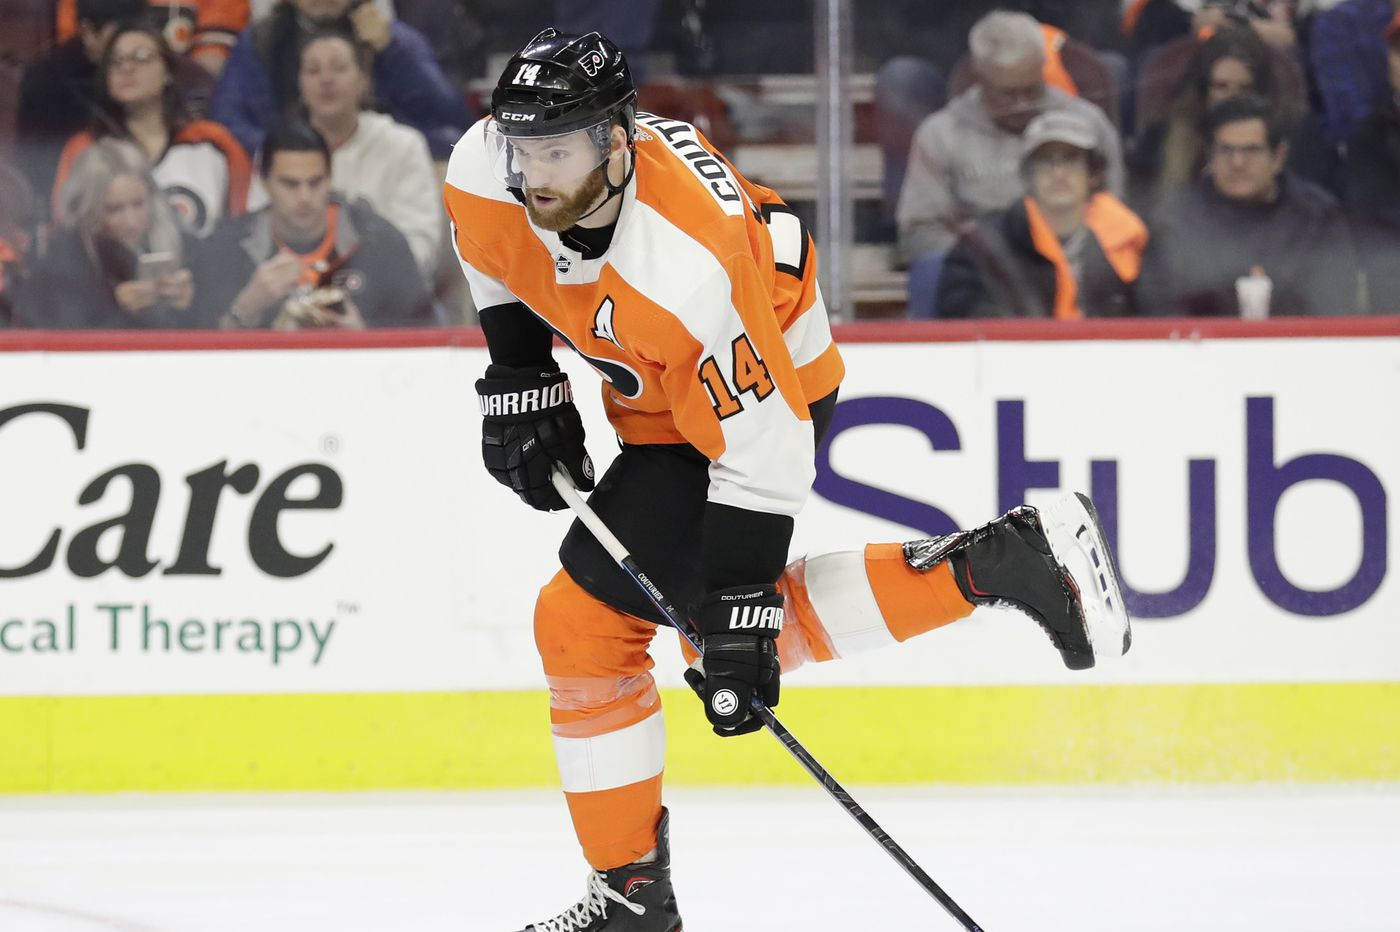 Sean Couturier on slumping Flyers: 'We have to start showing more will'